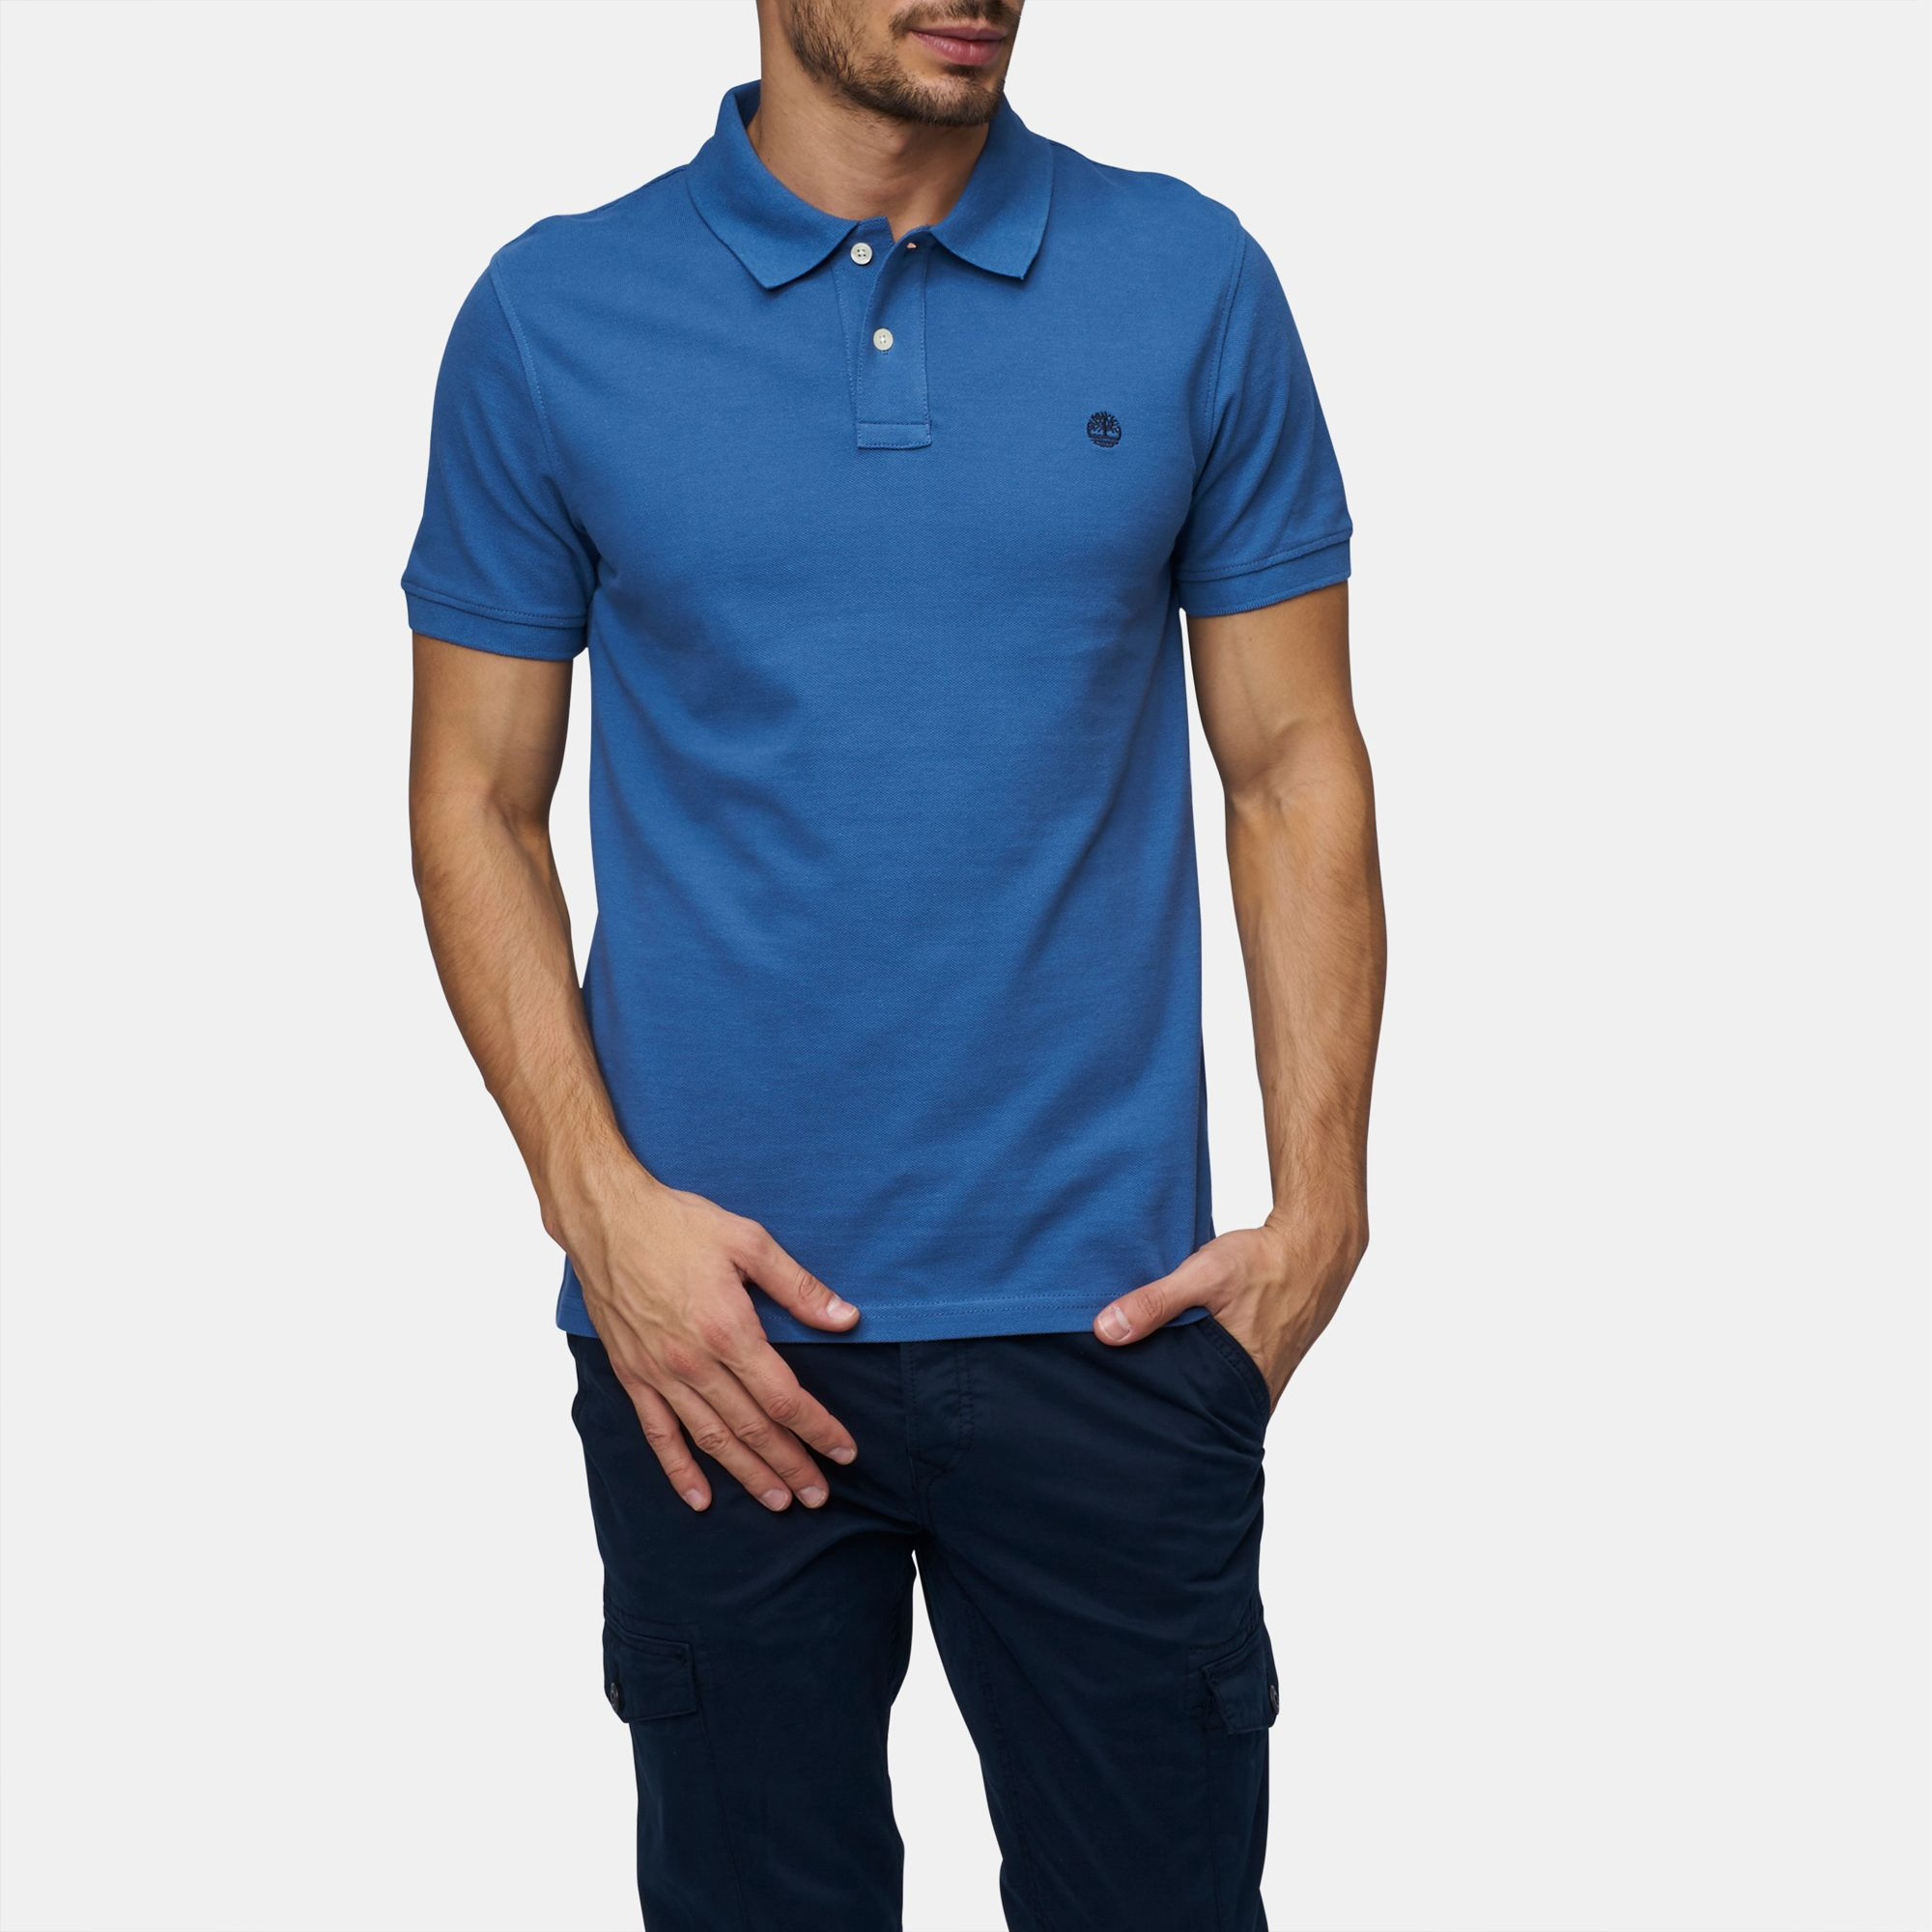 Timberland Millers River Polo T Shirt Polo Shirts Tops